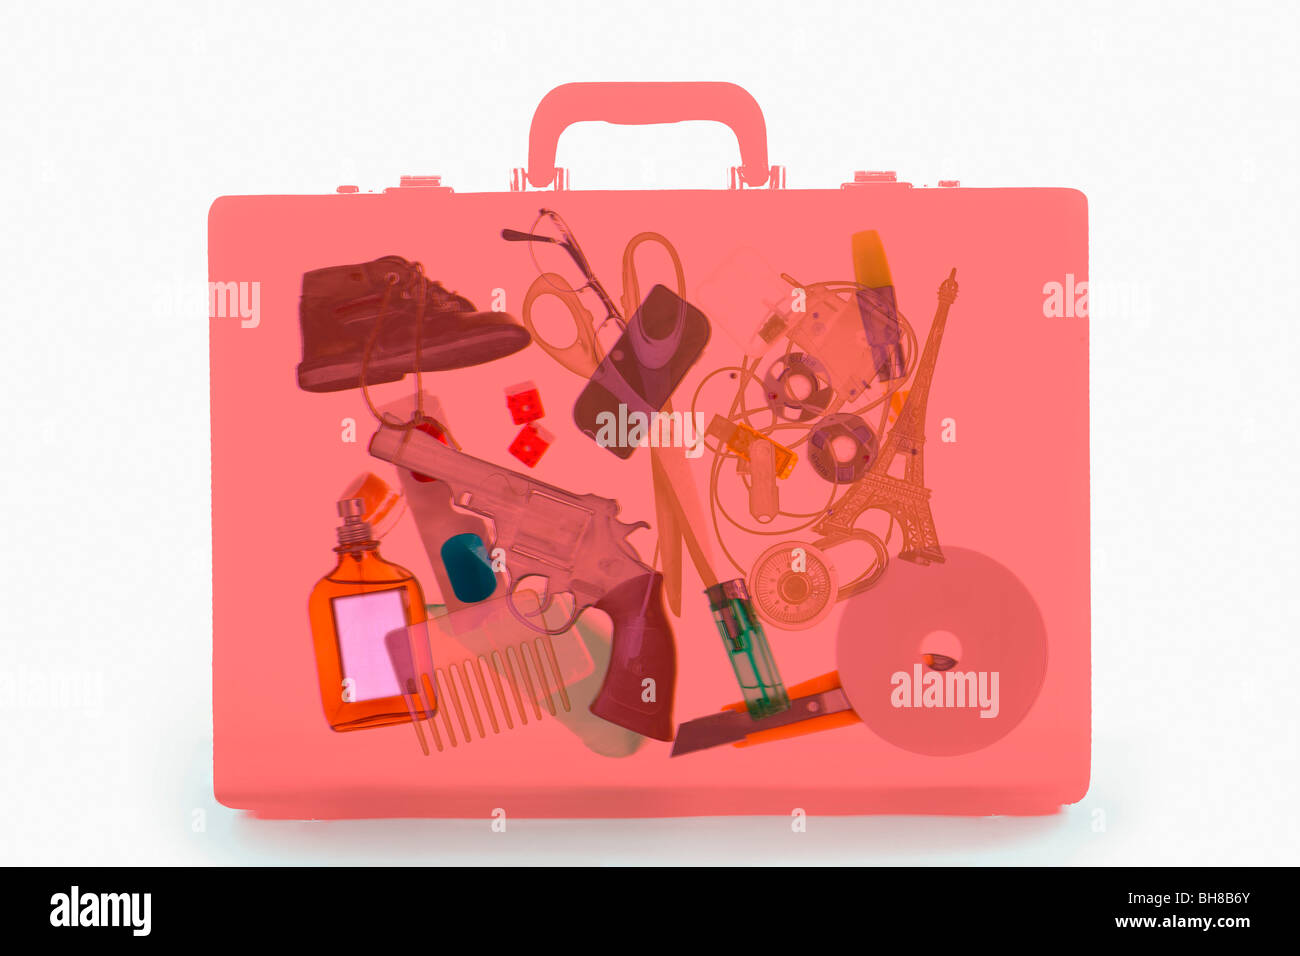 X-ray image of a briefcase containing illicit objects - Stock Image